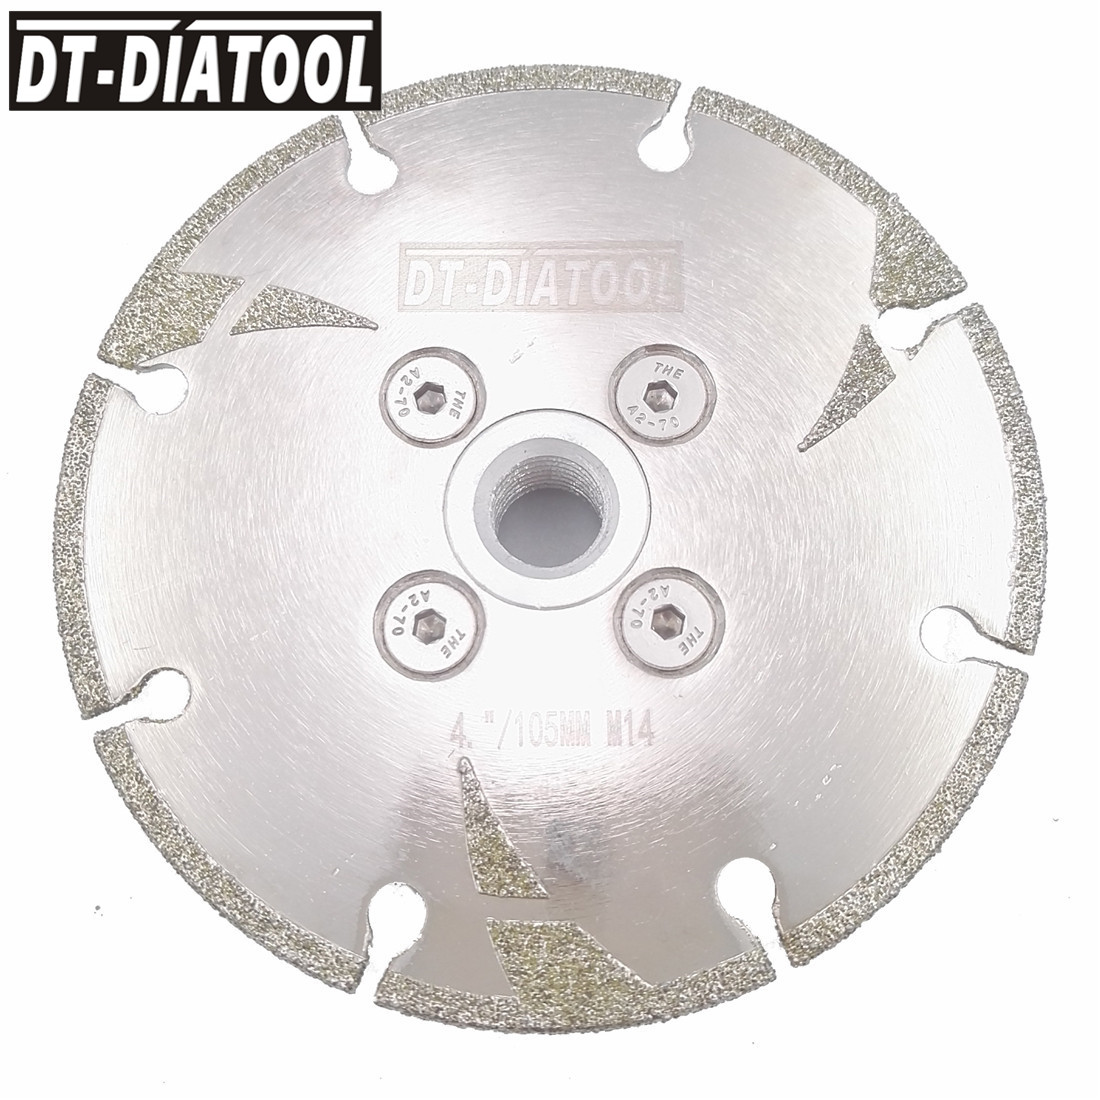 DT-DIATOOL 100mm/115mm/125mm Electroplated Reinforced Diamond Cutting Disc Saw Blade with M14 Thread DIa 4 4.5 5 Dry oe Wet